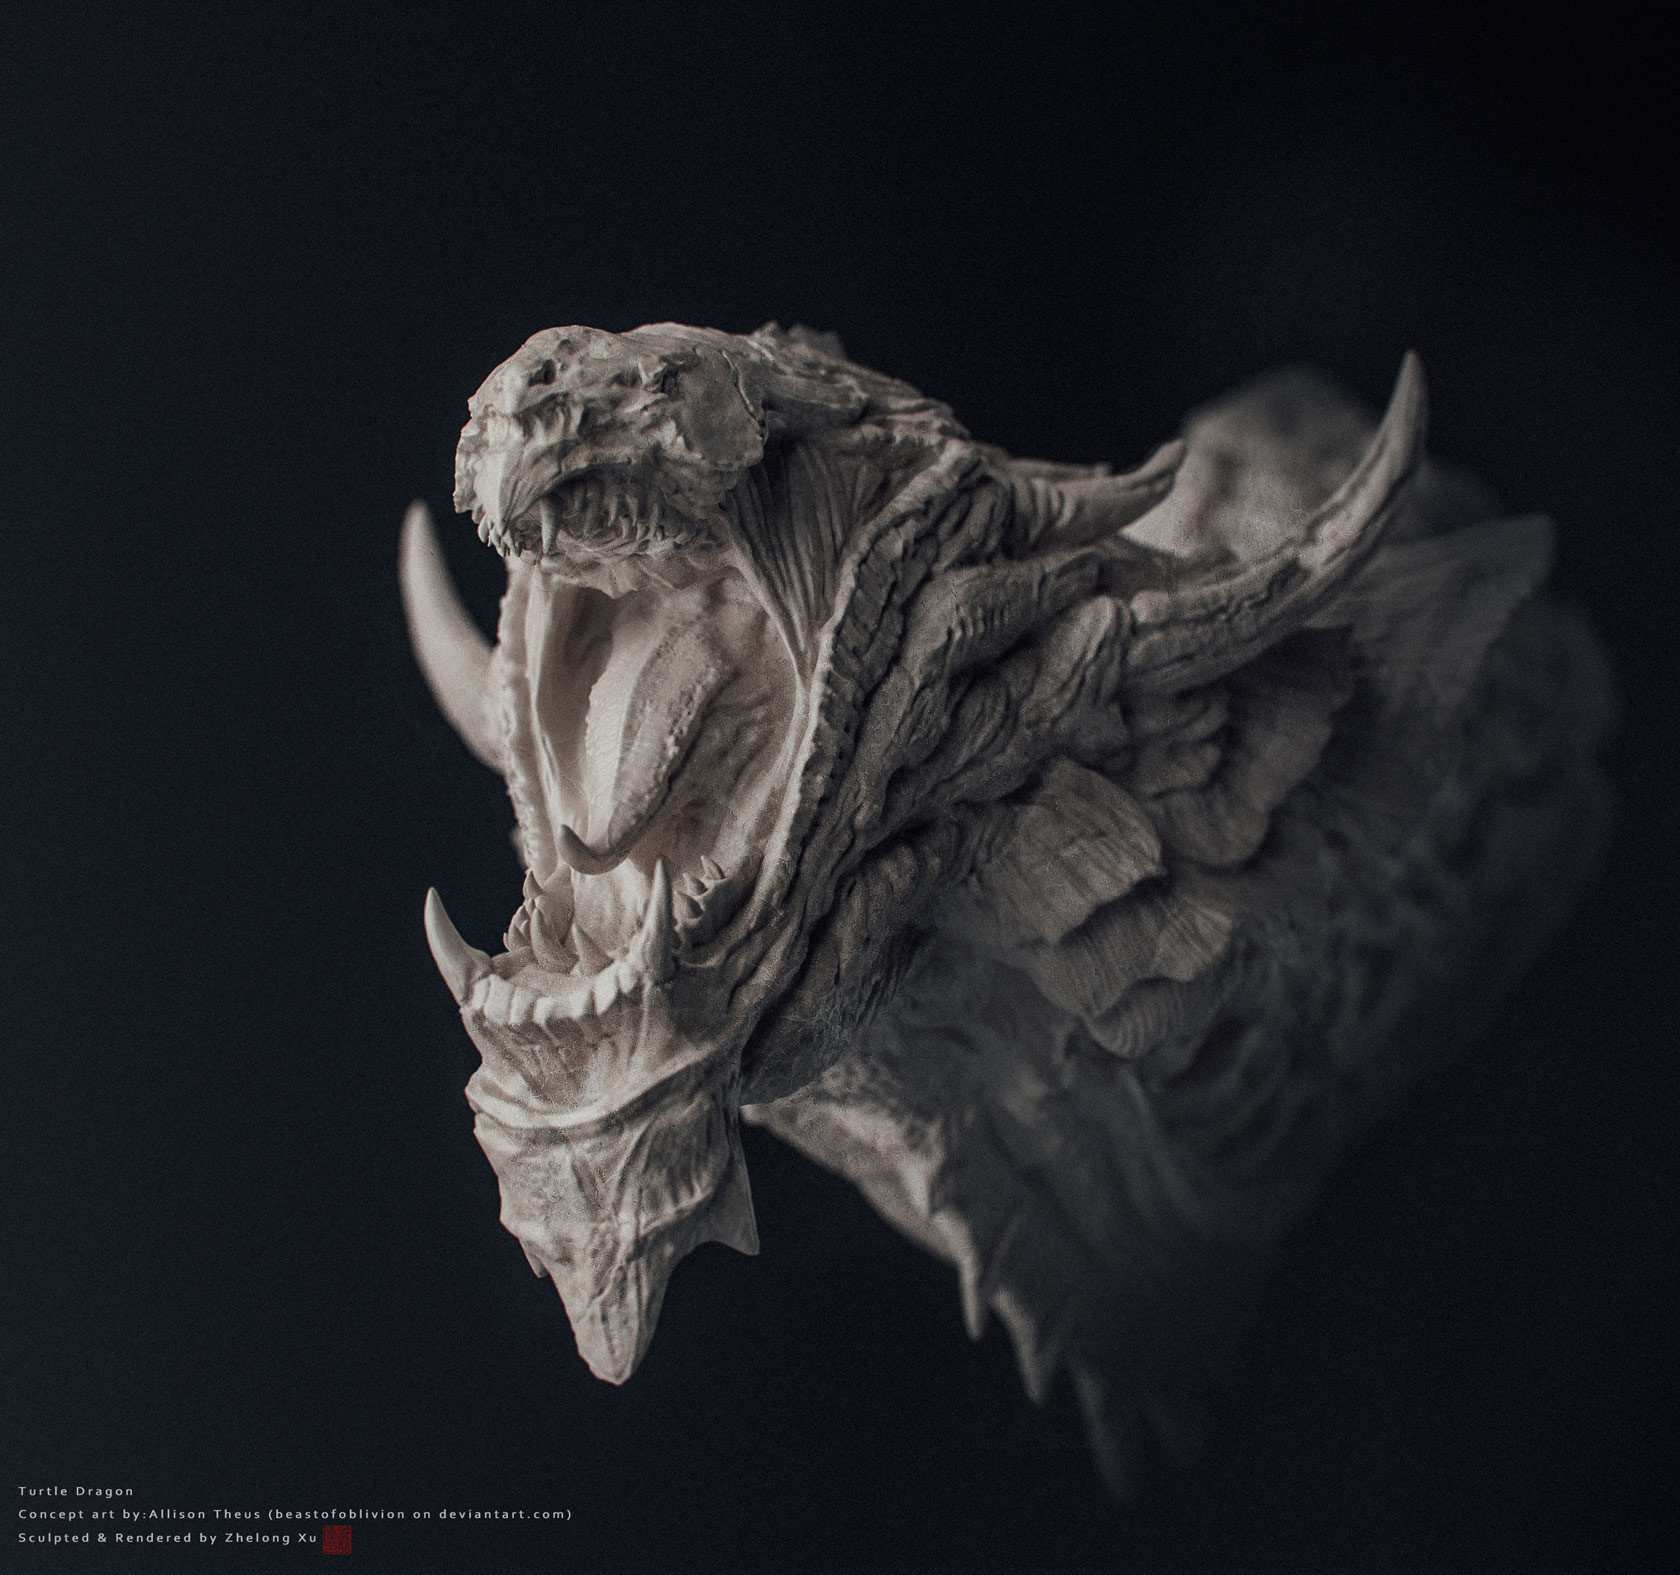 Zhelong xu turtledragon 3